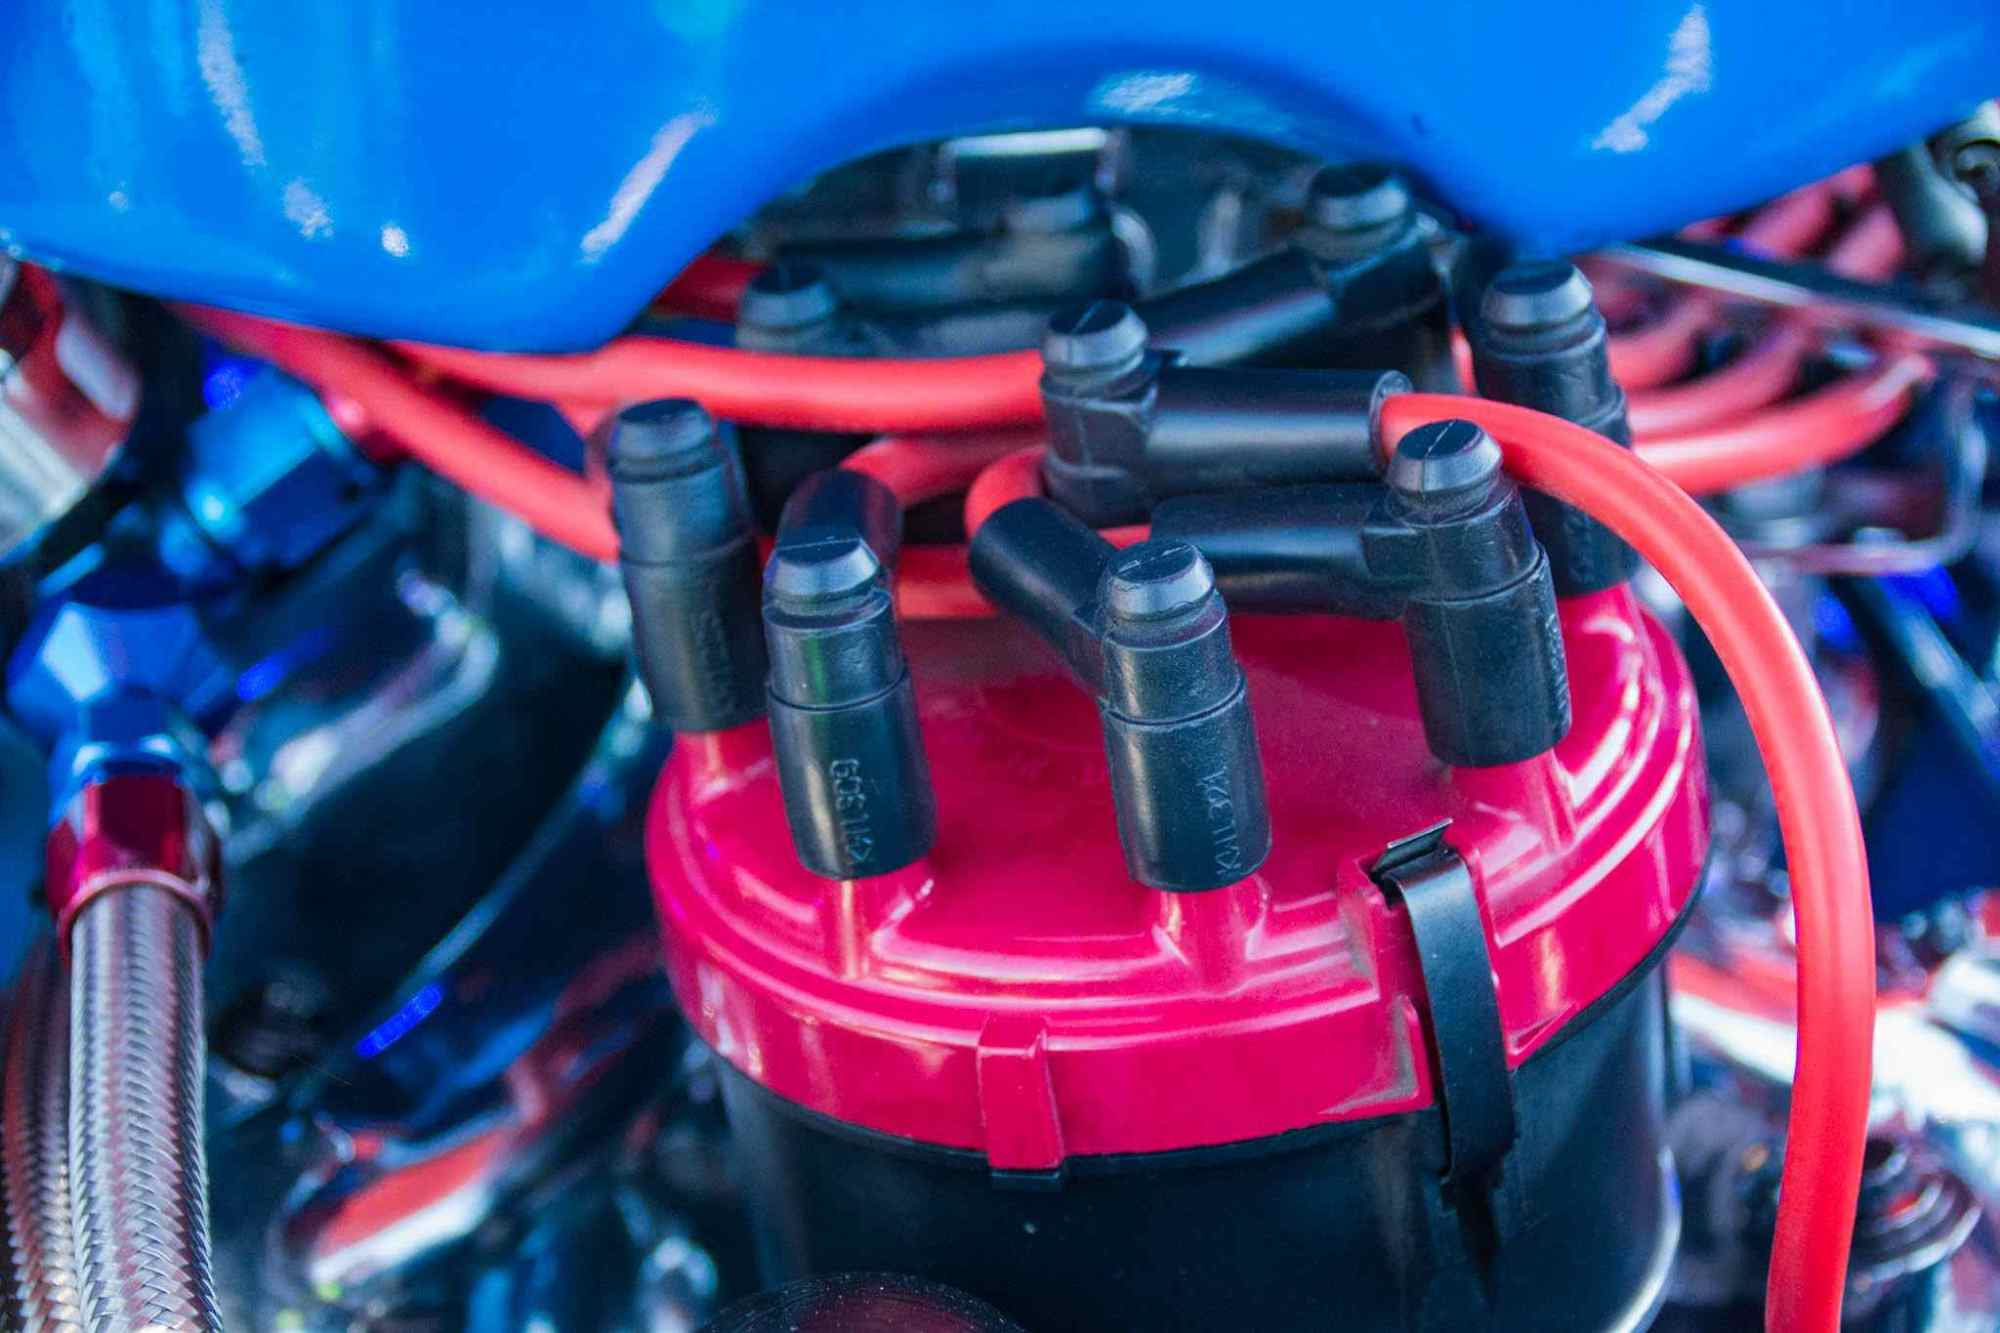 hight resolution of distributor cap and spark plugs in a classic car close up